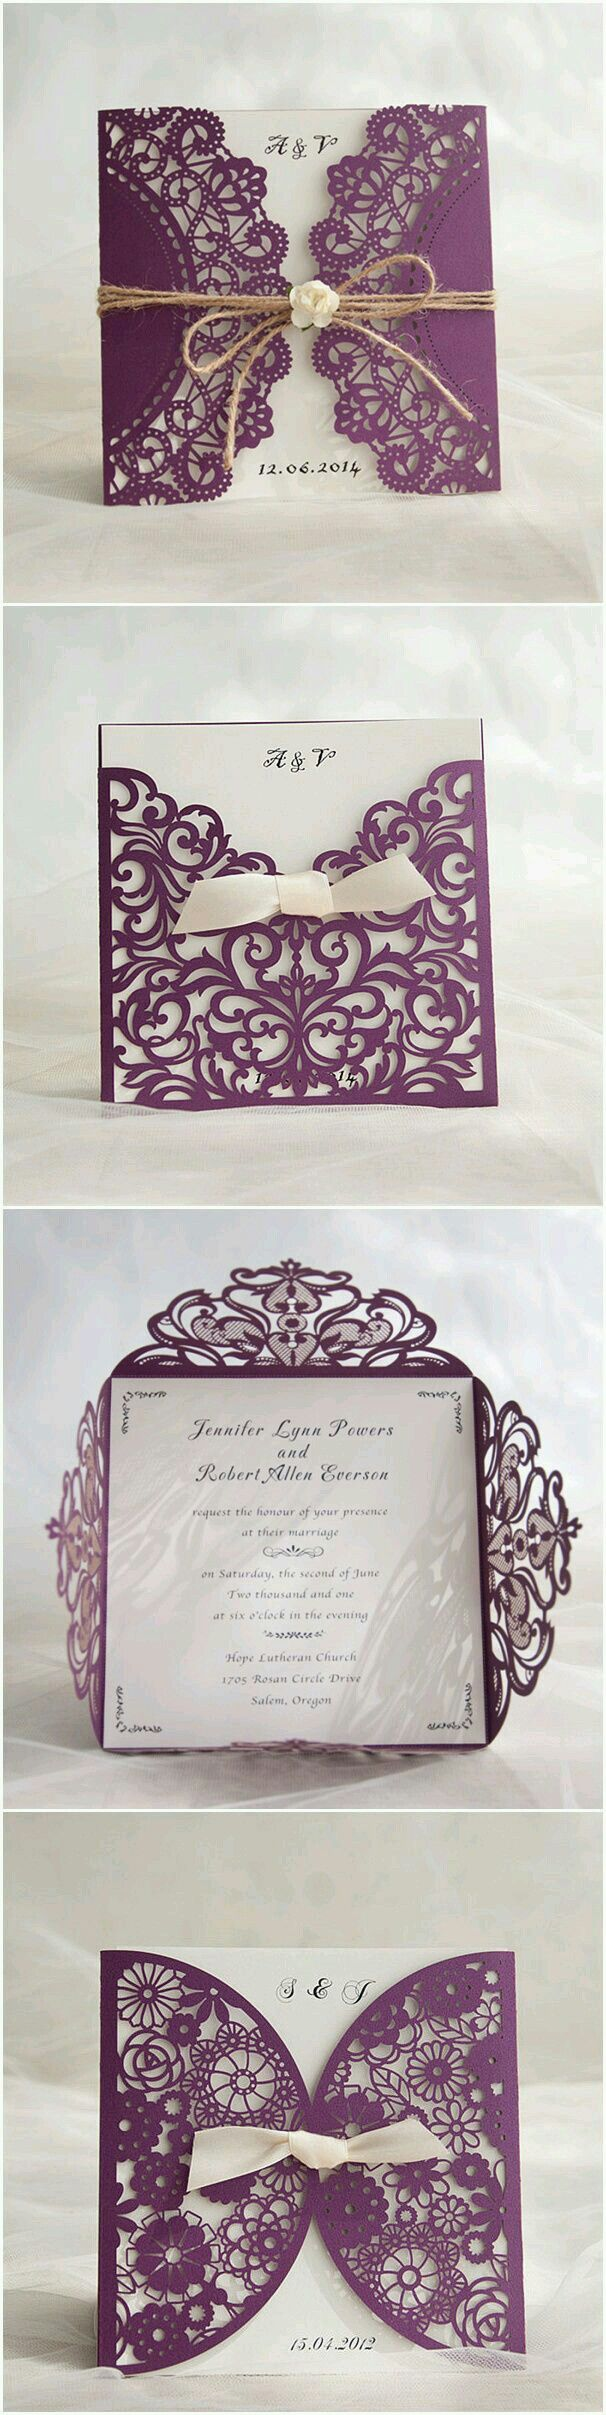 wedding invitation card format marathi wording%0A Purple Themed Chic Rustic DIY Laser Cut Wedding Invitations Feel free to  delete Just looking at possible DIY invitations inspirations for you